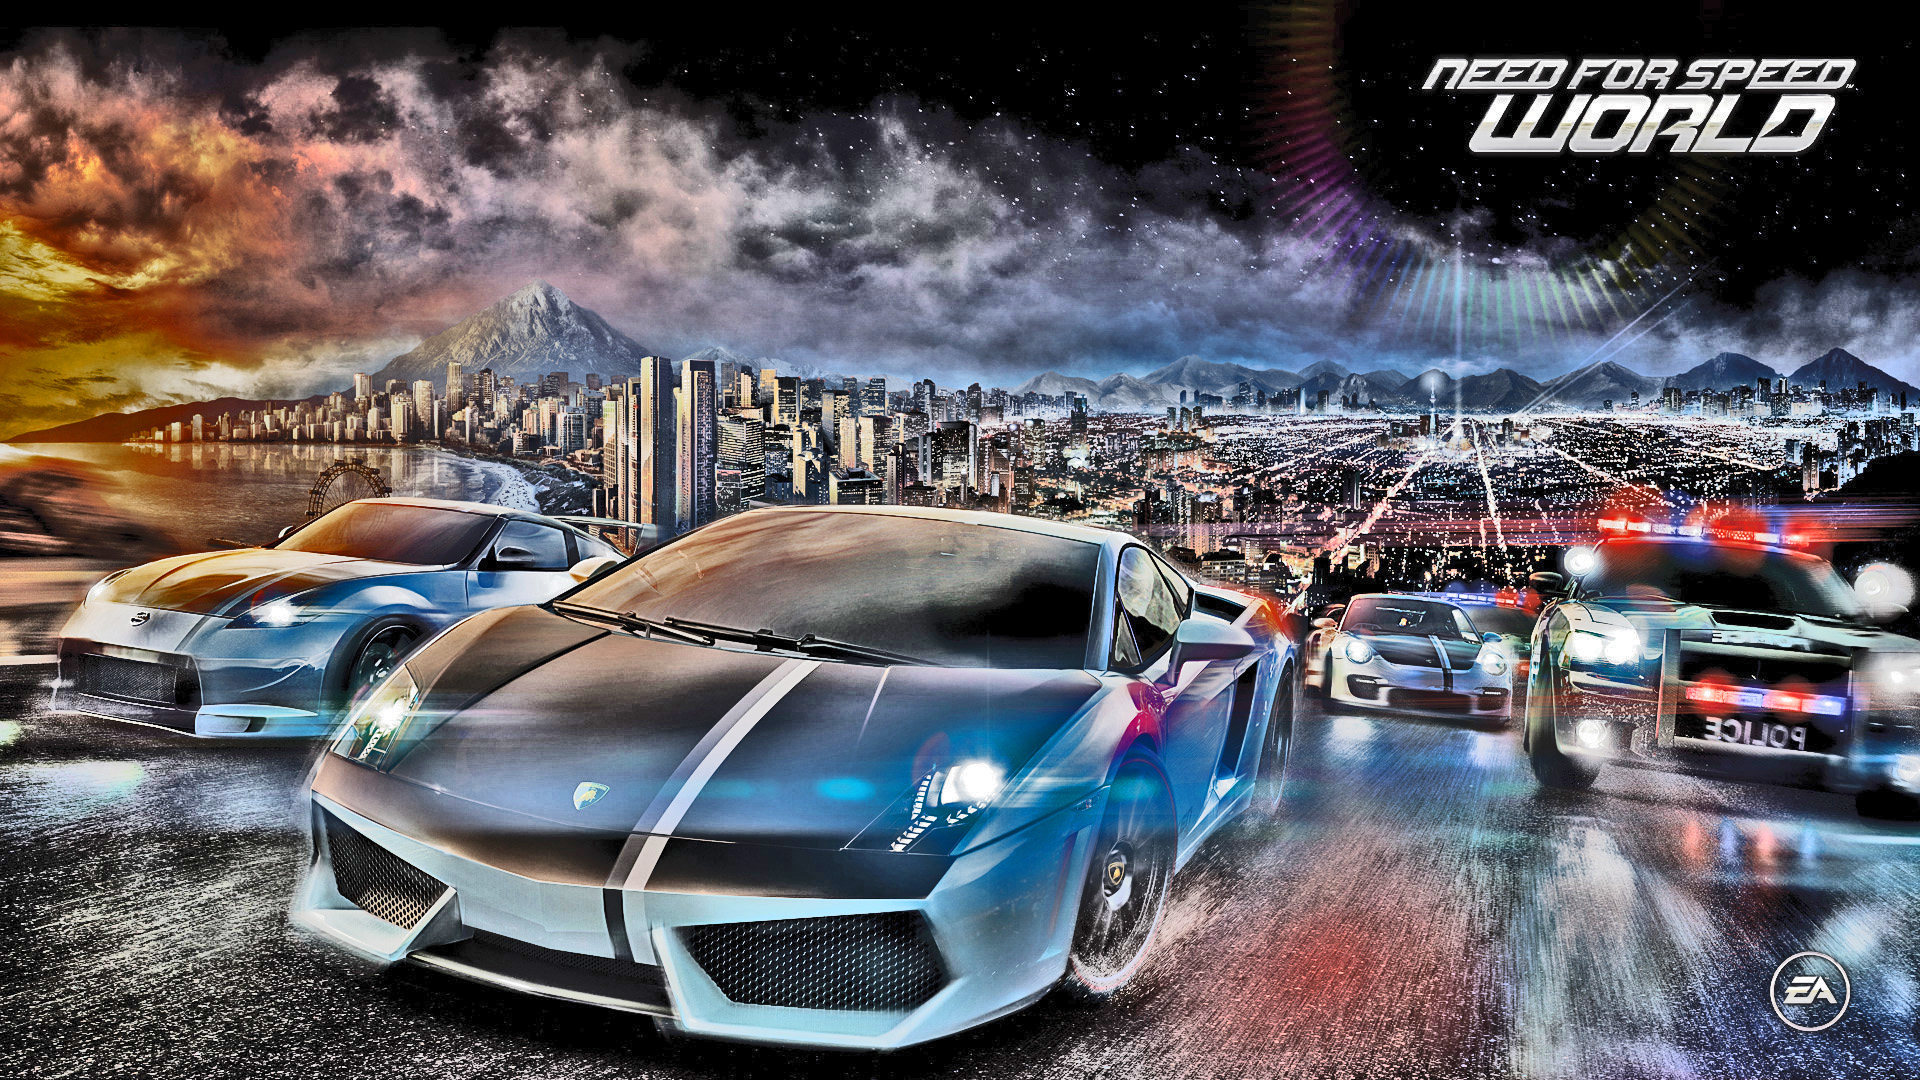 NFS World by ponygsi on DeviantArt